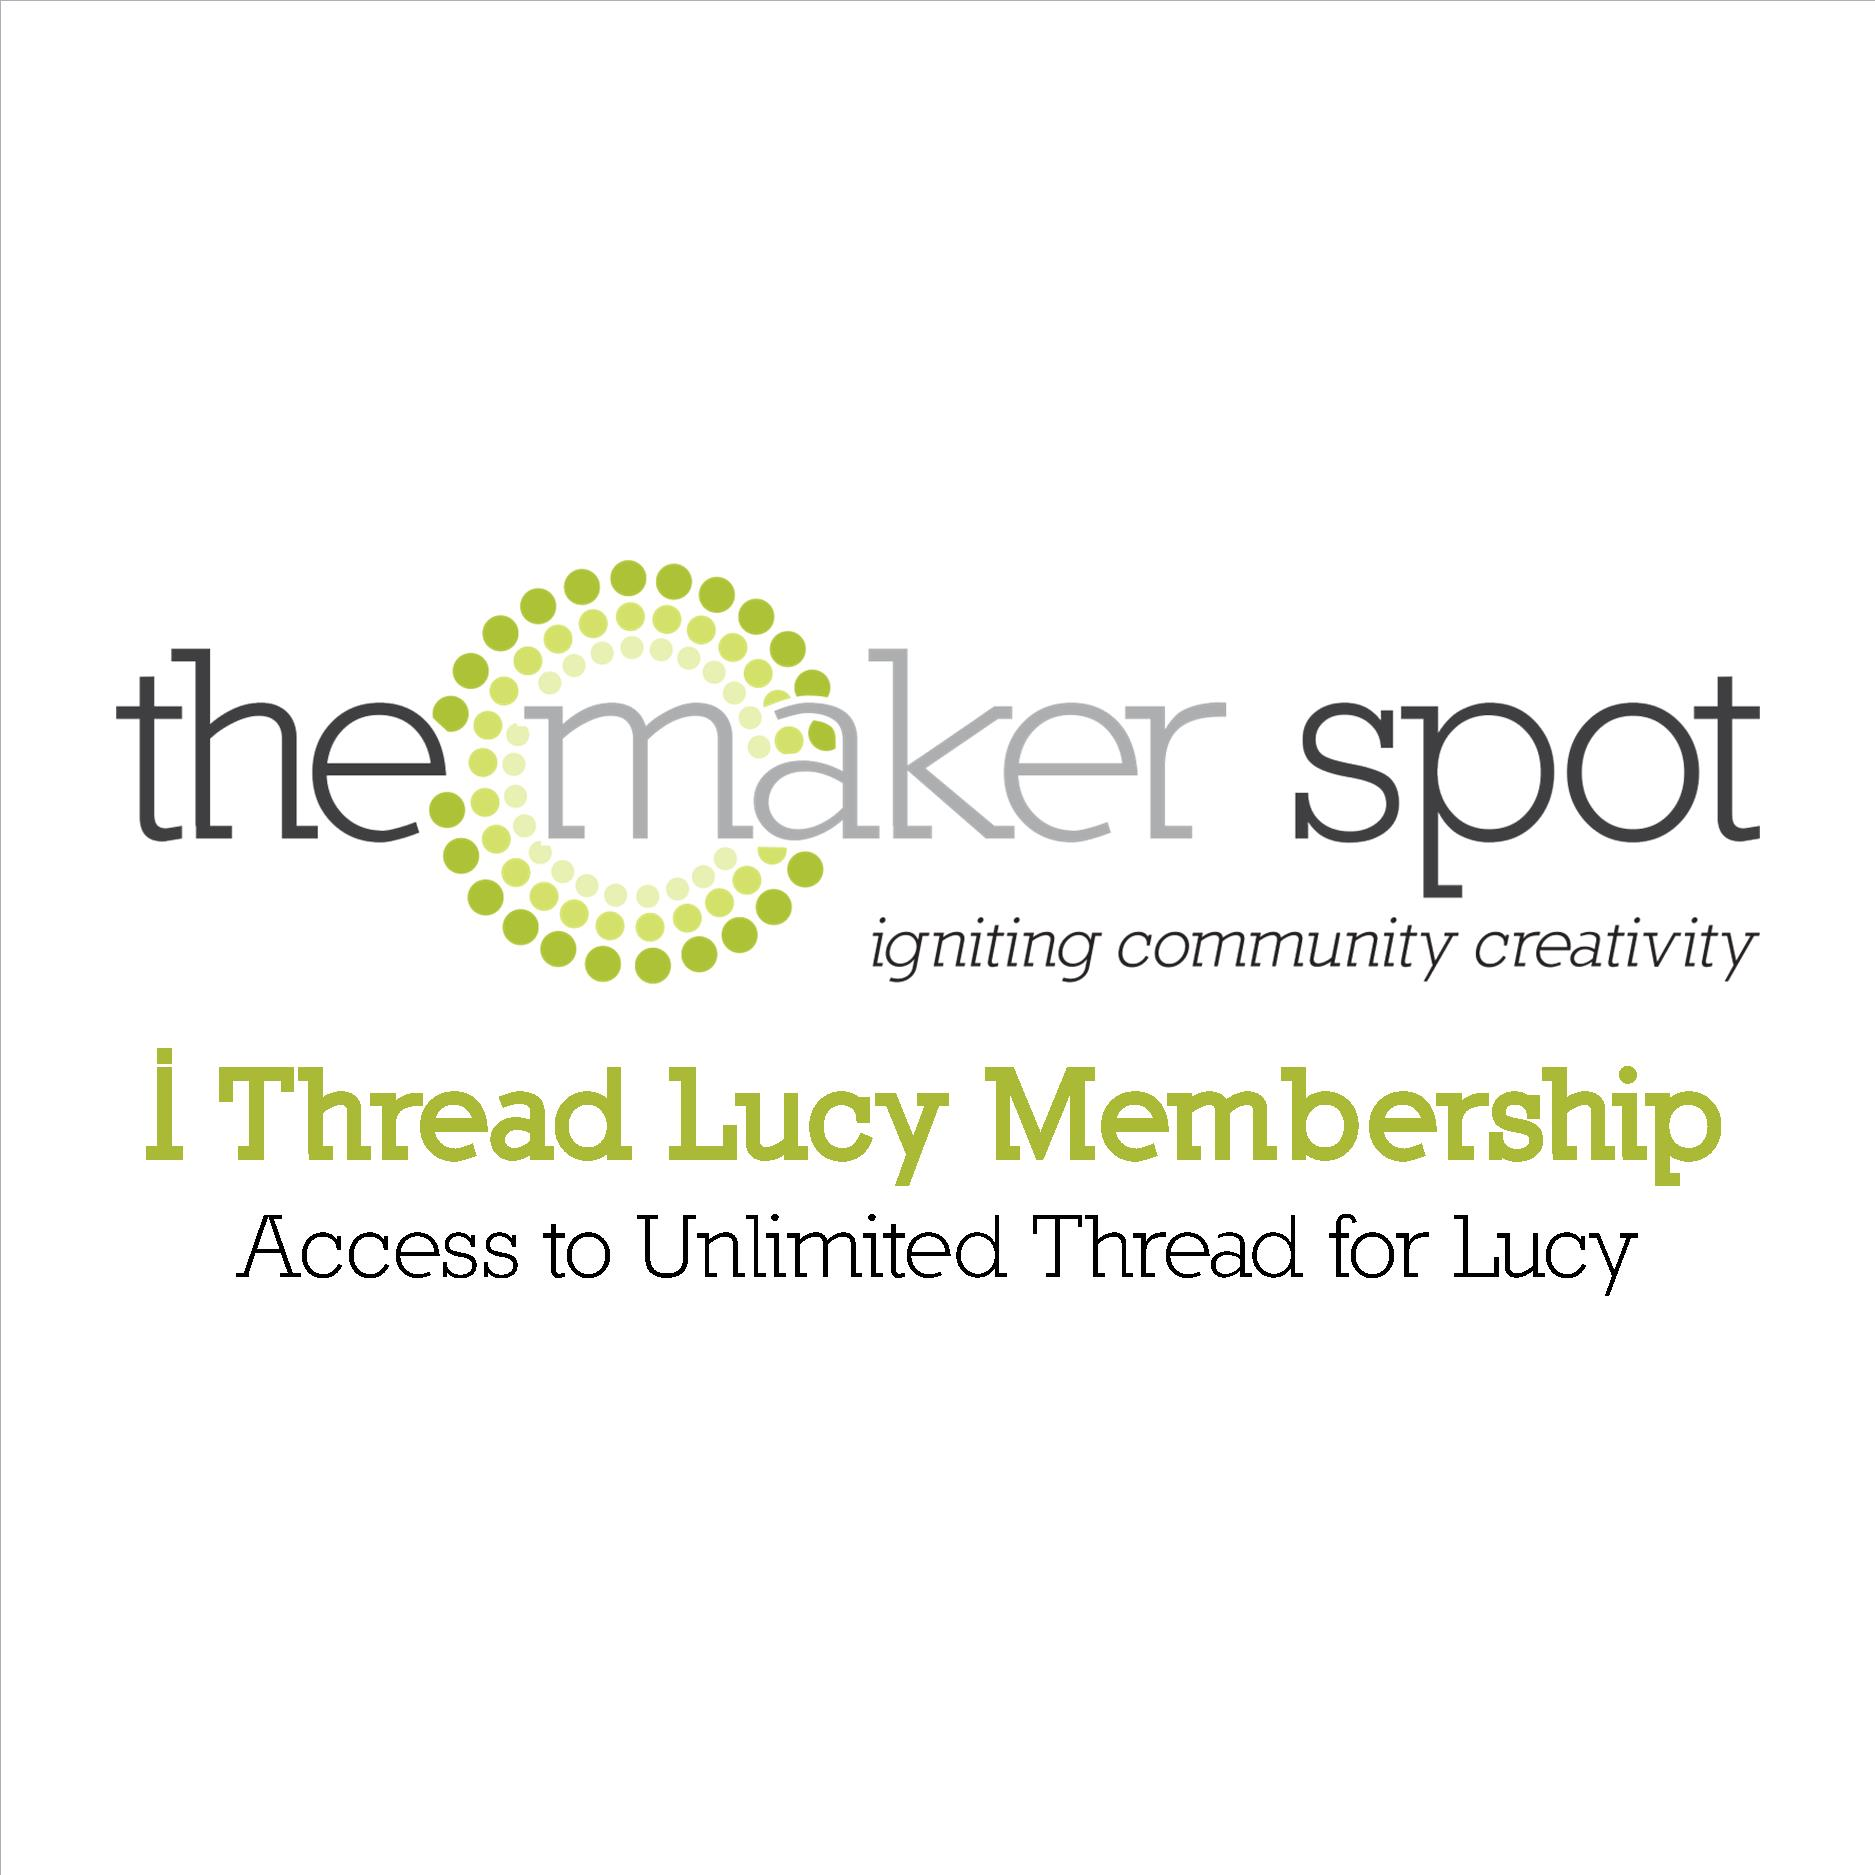 I Thread Lucy Membership